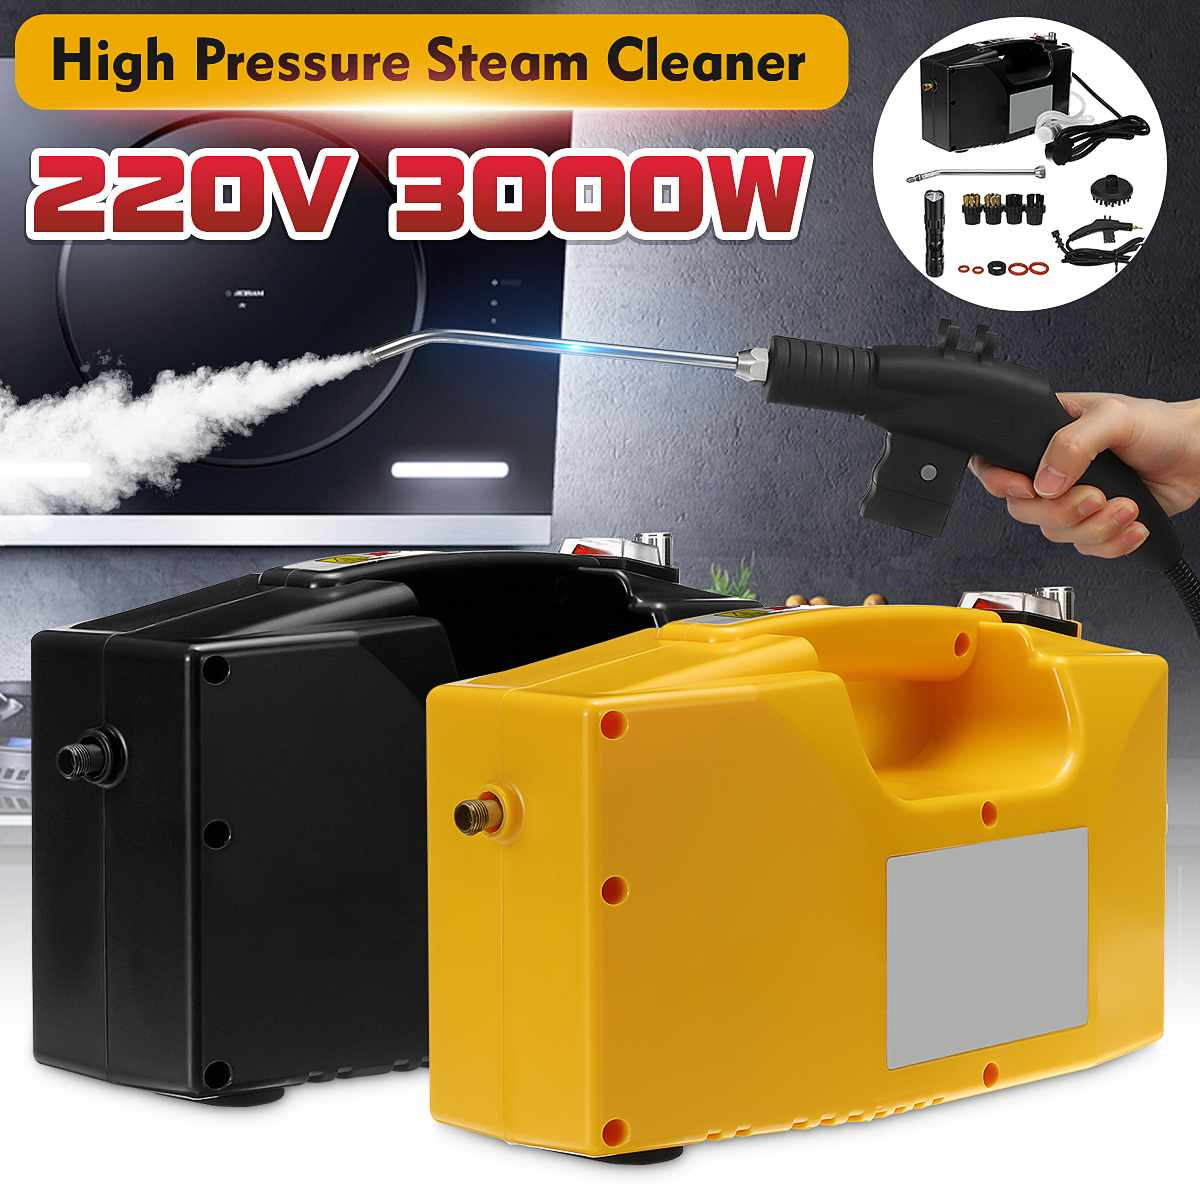 220V 3000W Professional Steam Cleaner Handheld Steam Generator High Pressure Cleaning Machine For Household Kitchen